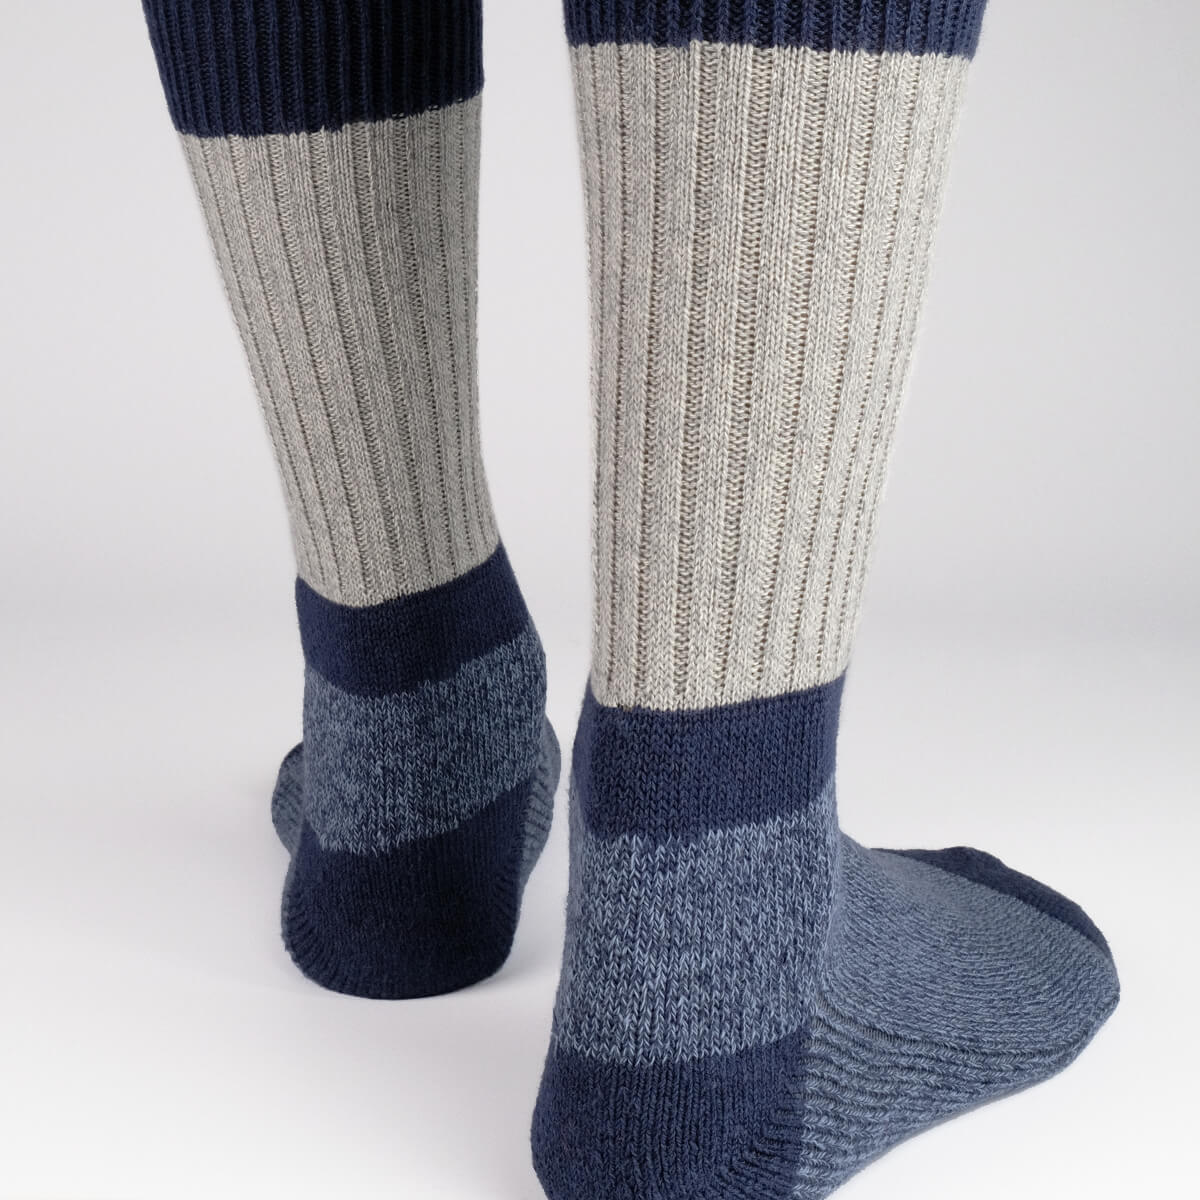 Mens Socks - Get The Boot Duo Socks - Blue⎪Etiquette Clothiers